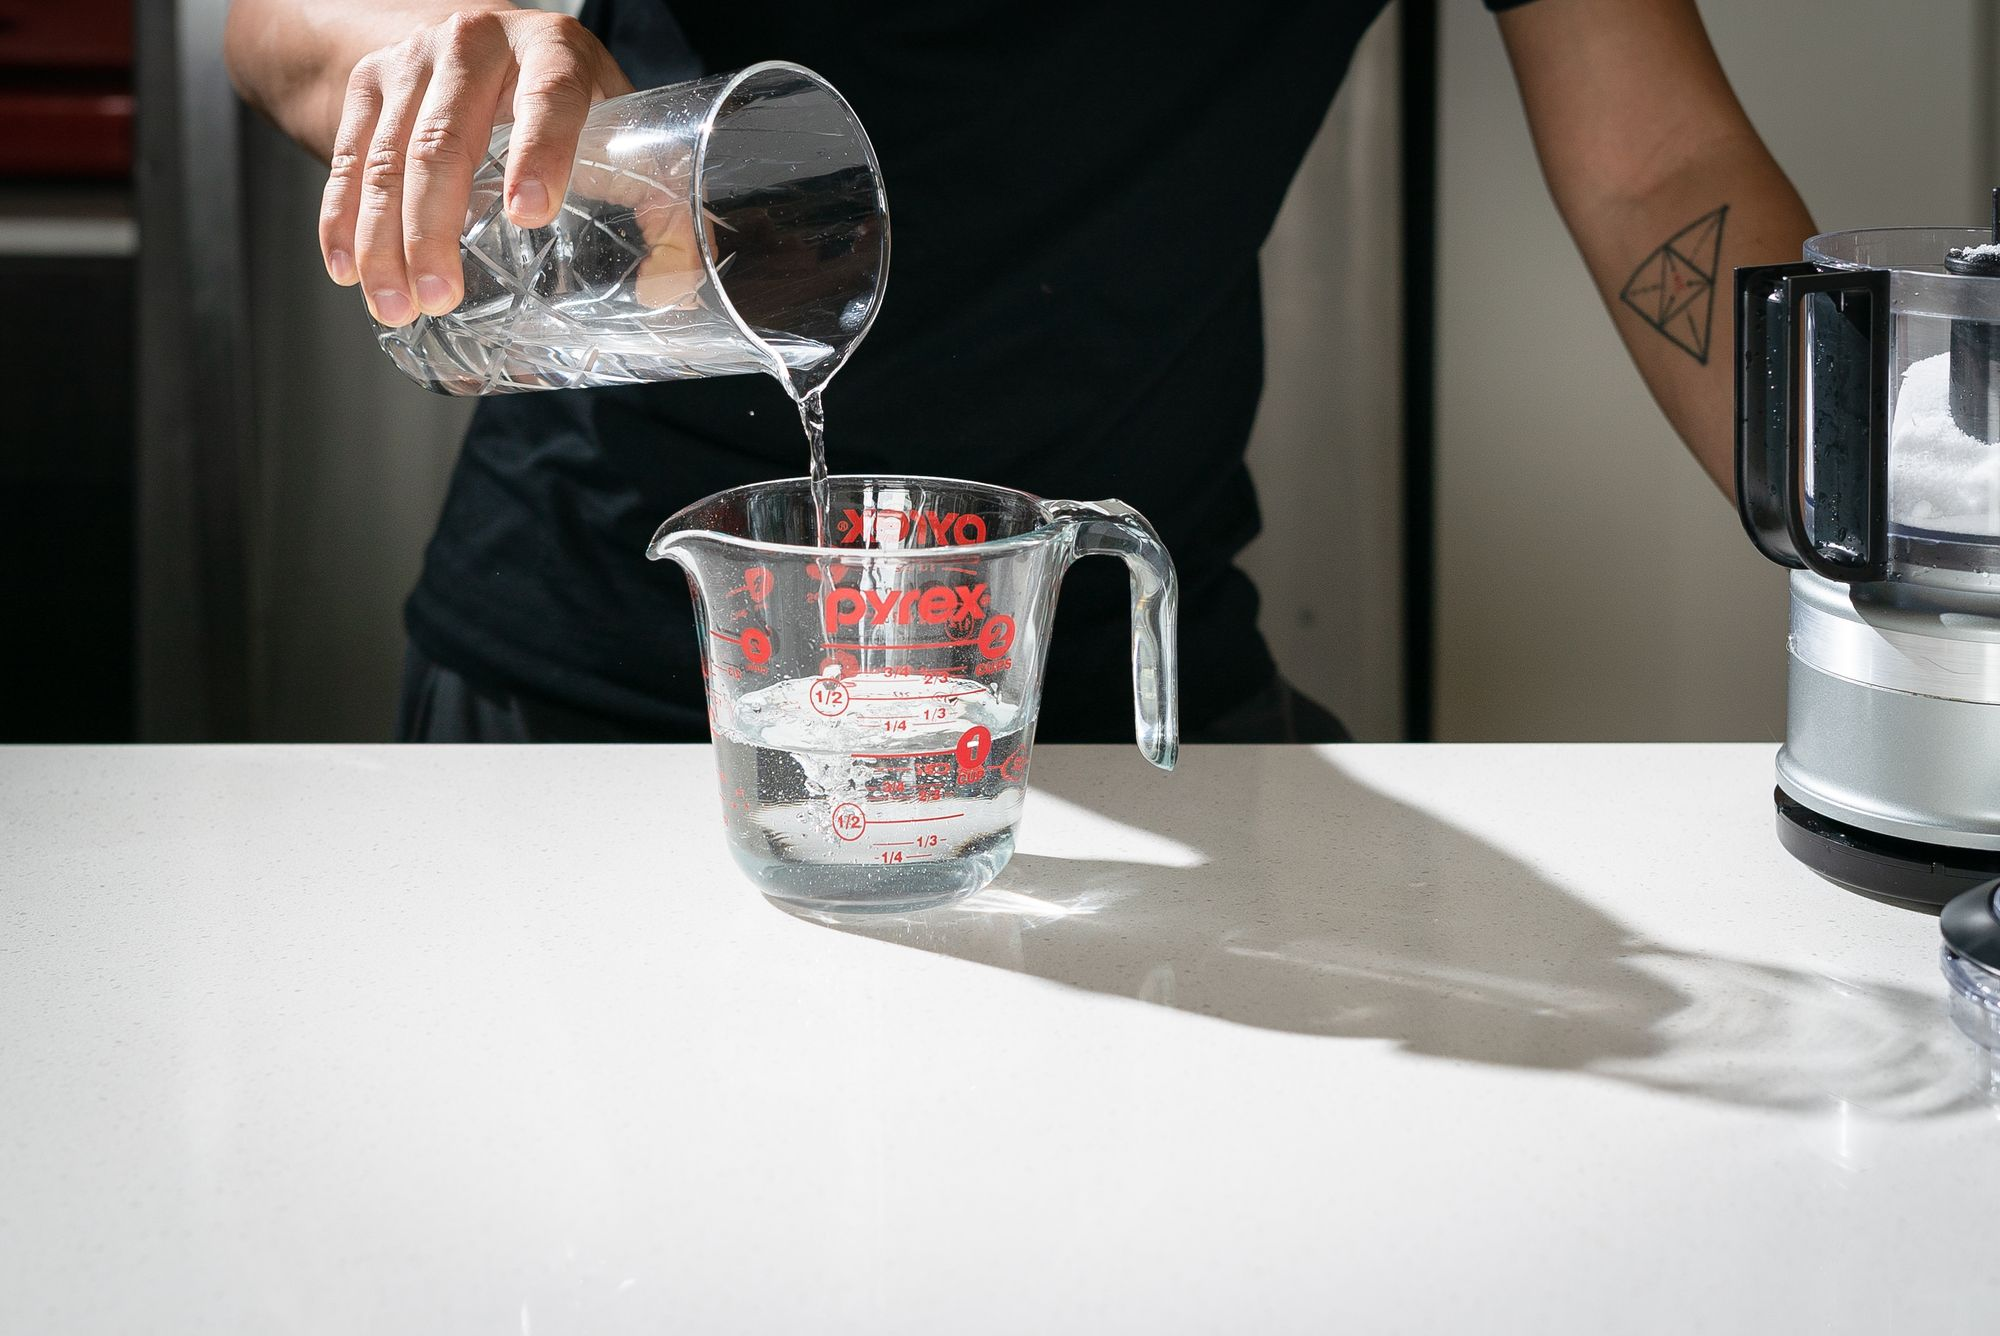 adding water to measuring cup